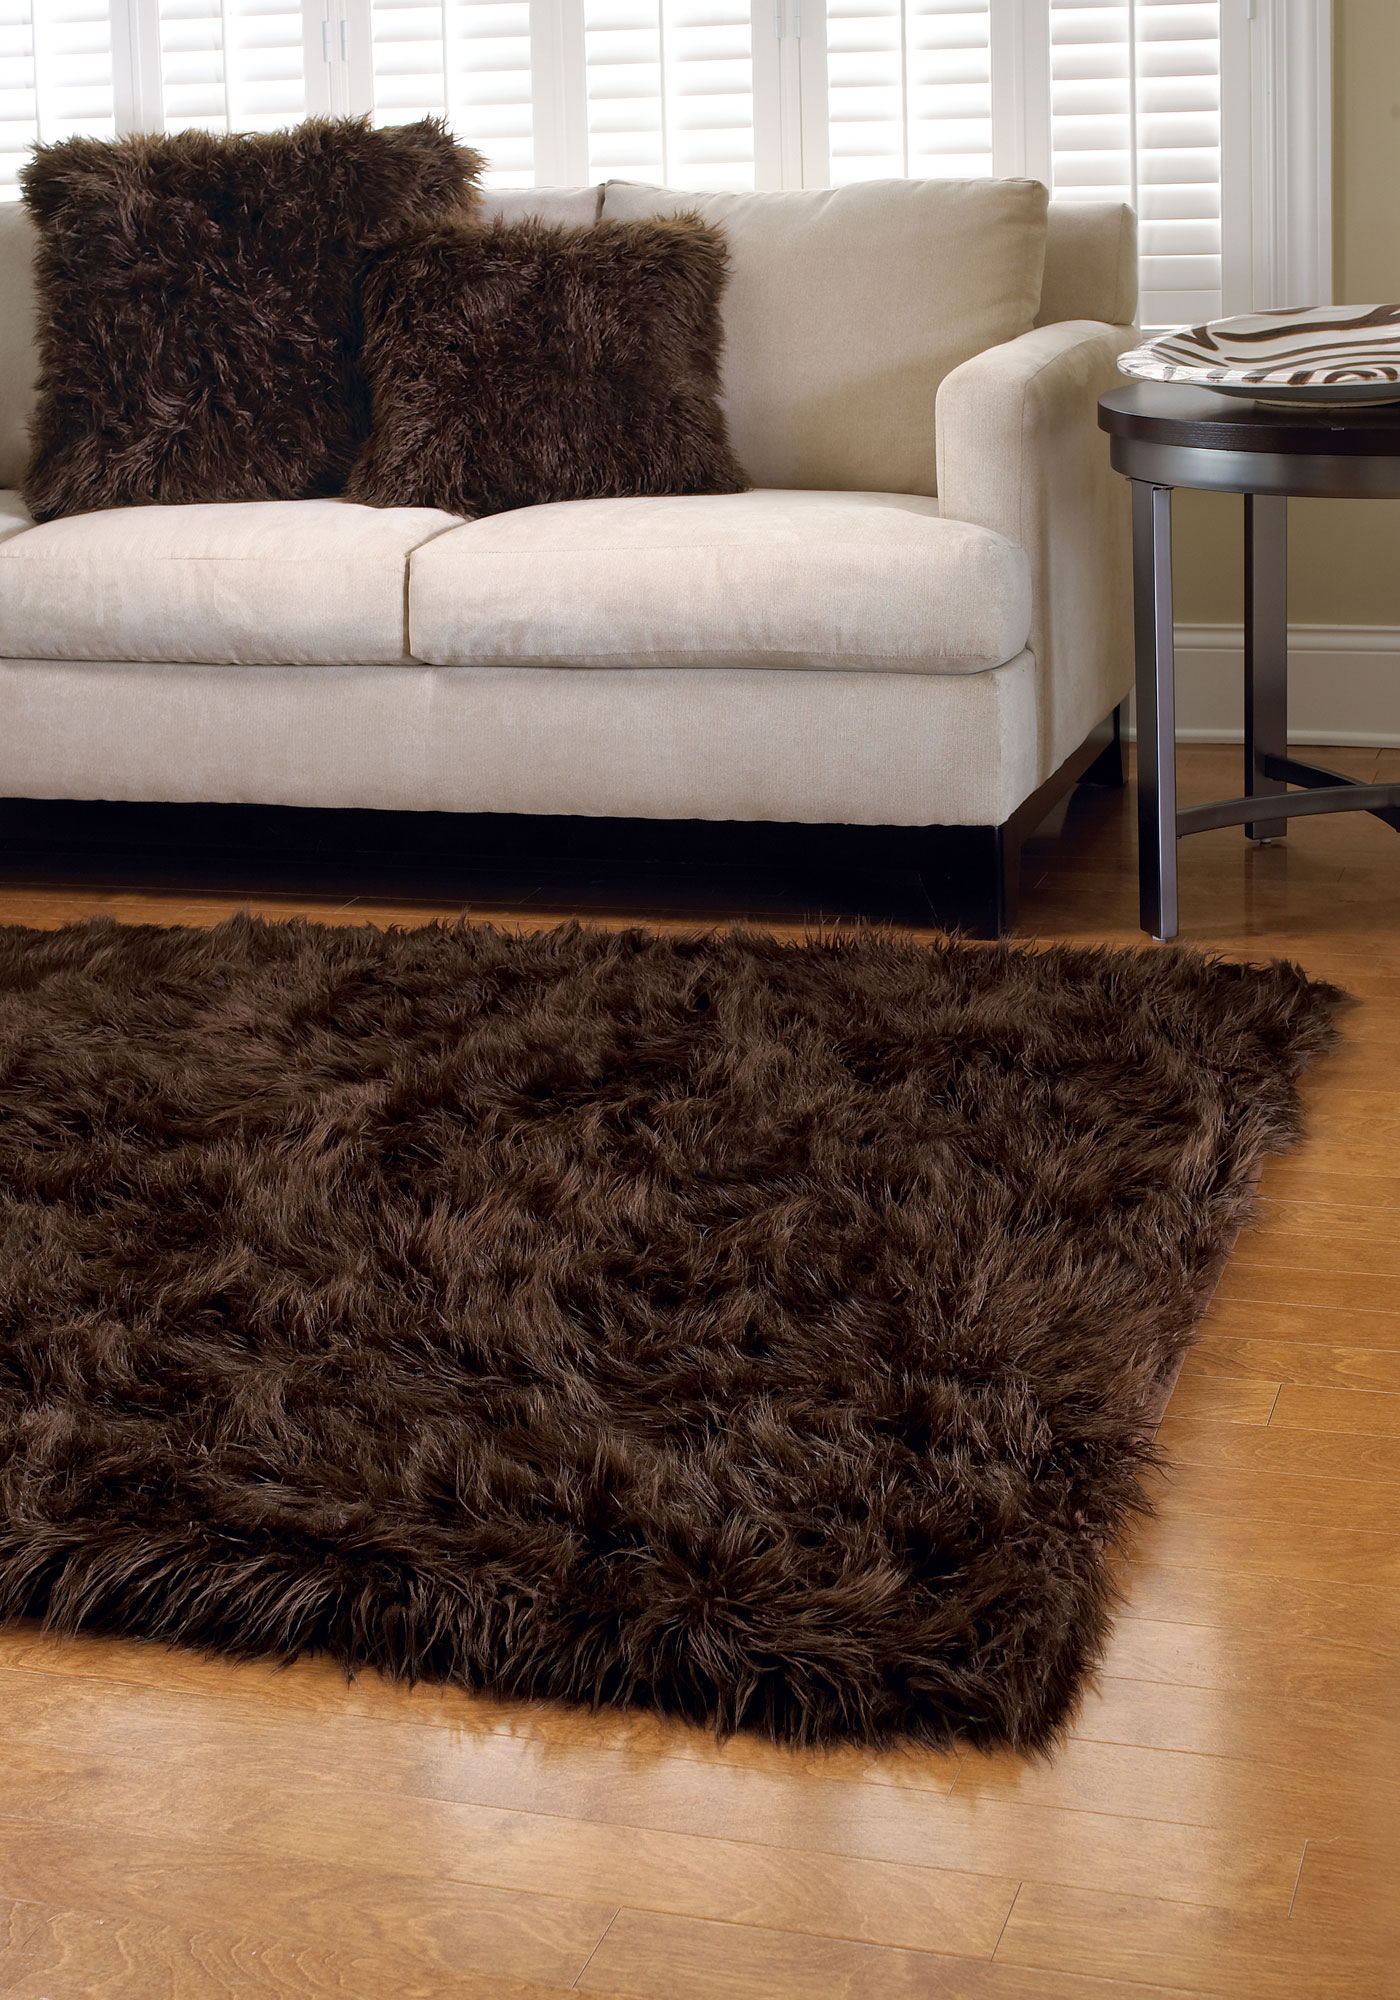 Faux Skin Rug | Fur Rug | Sheepskins for Sale